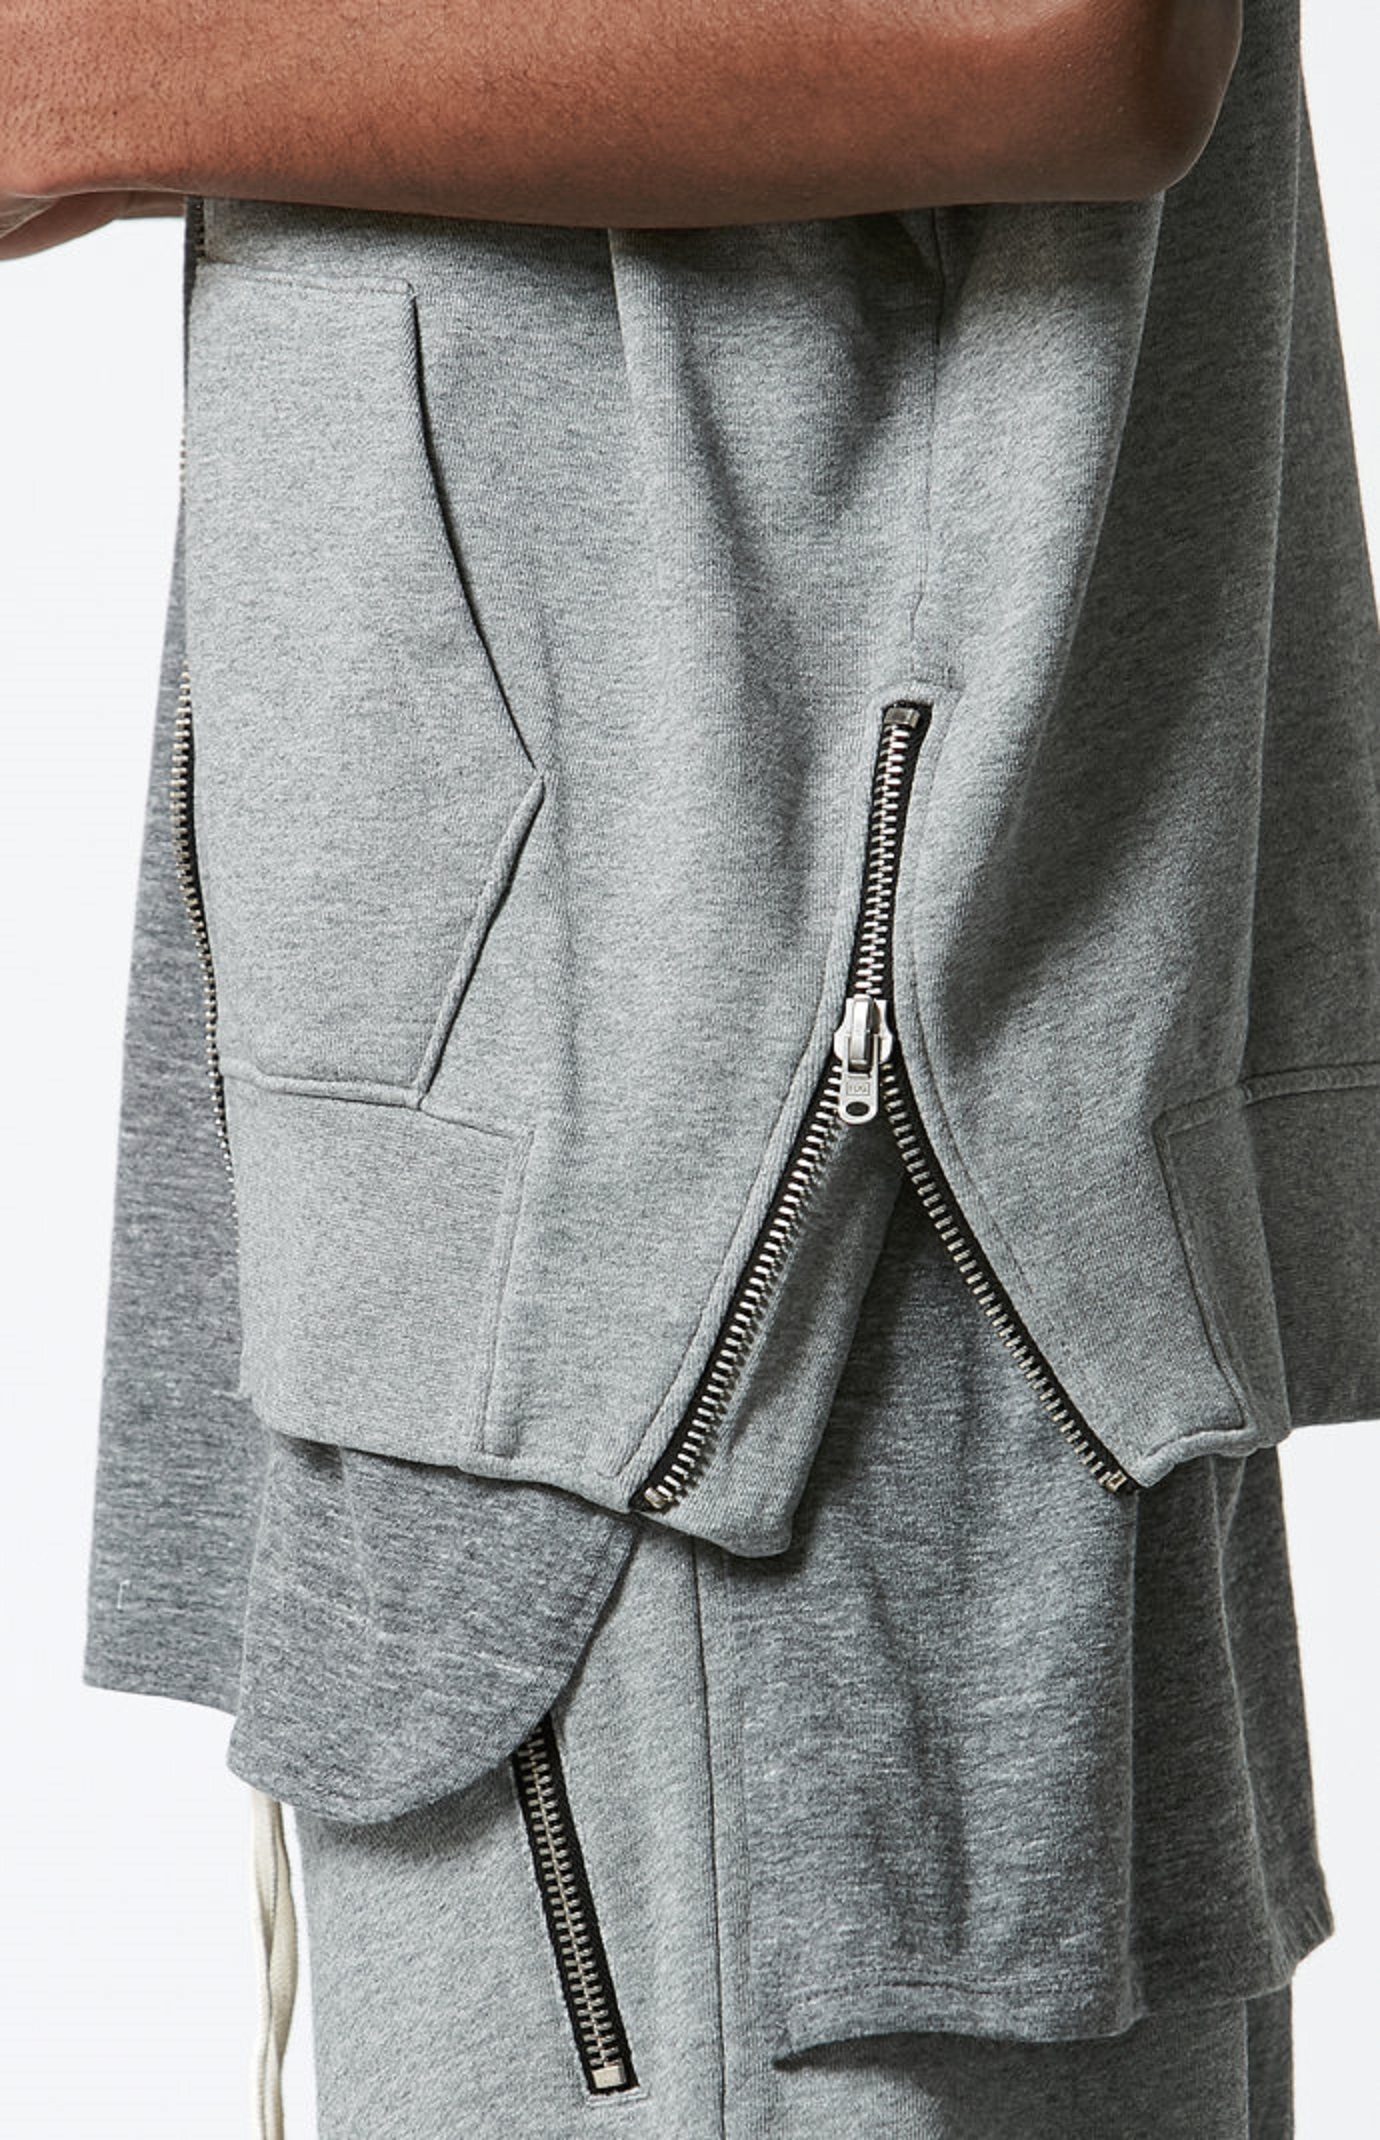 ★これからの季節に FOG - Fear Of God  Sleeveless Zip Hoodie